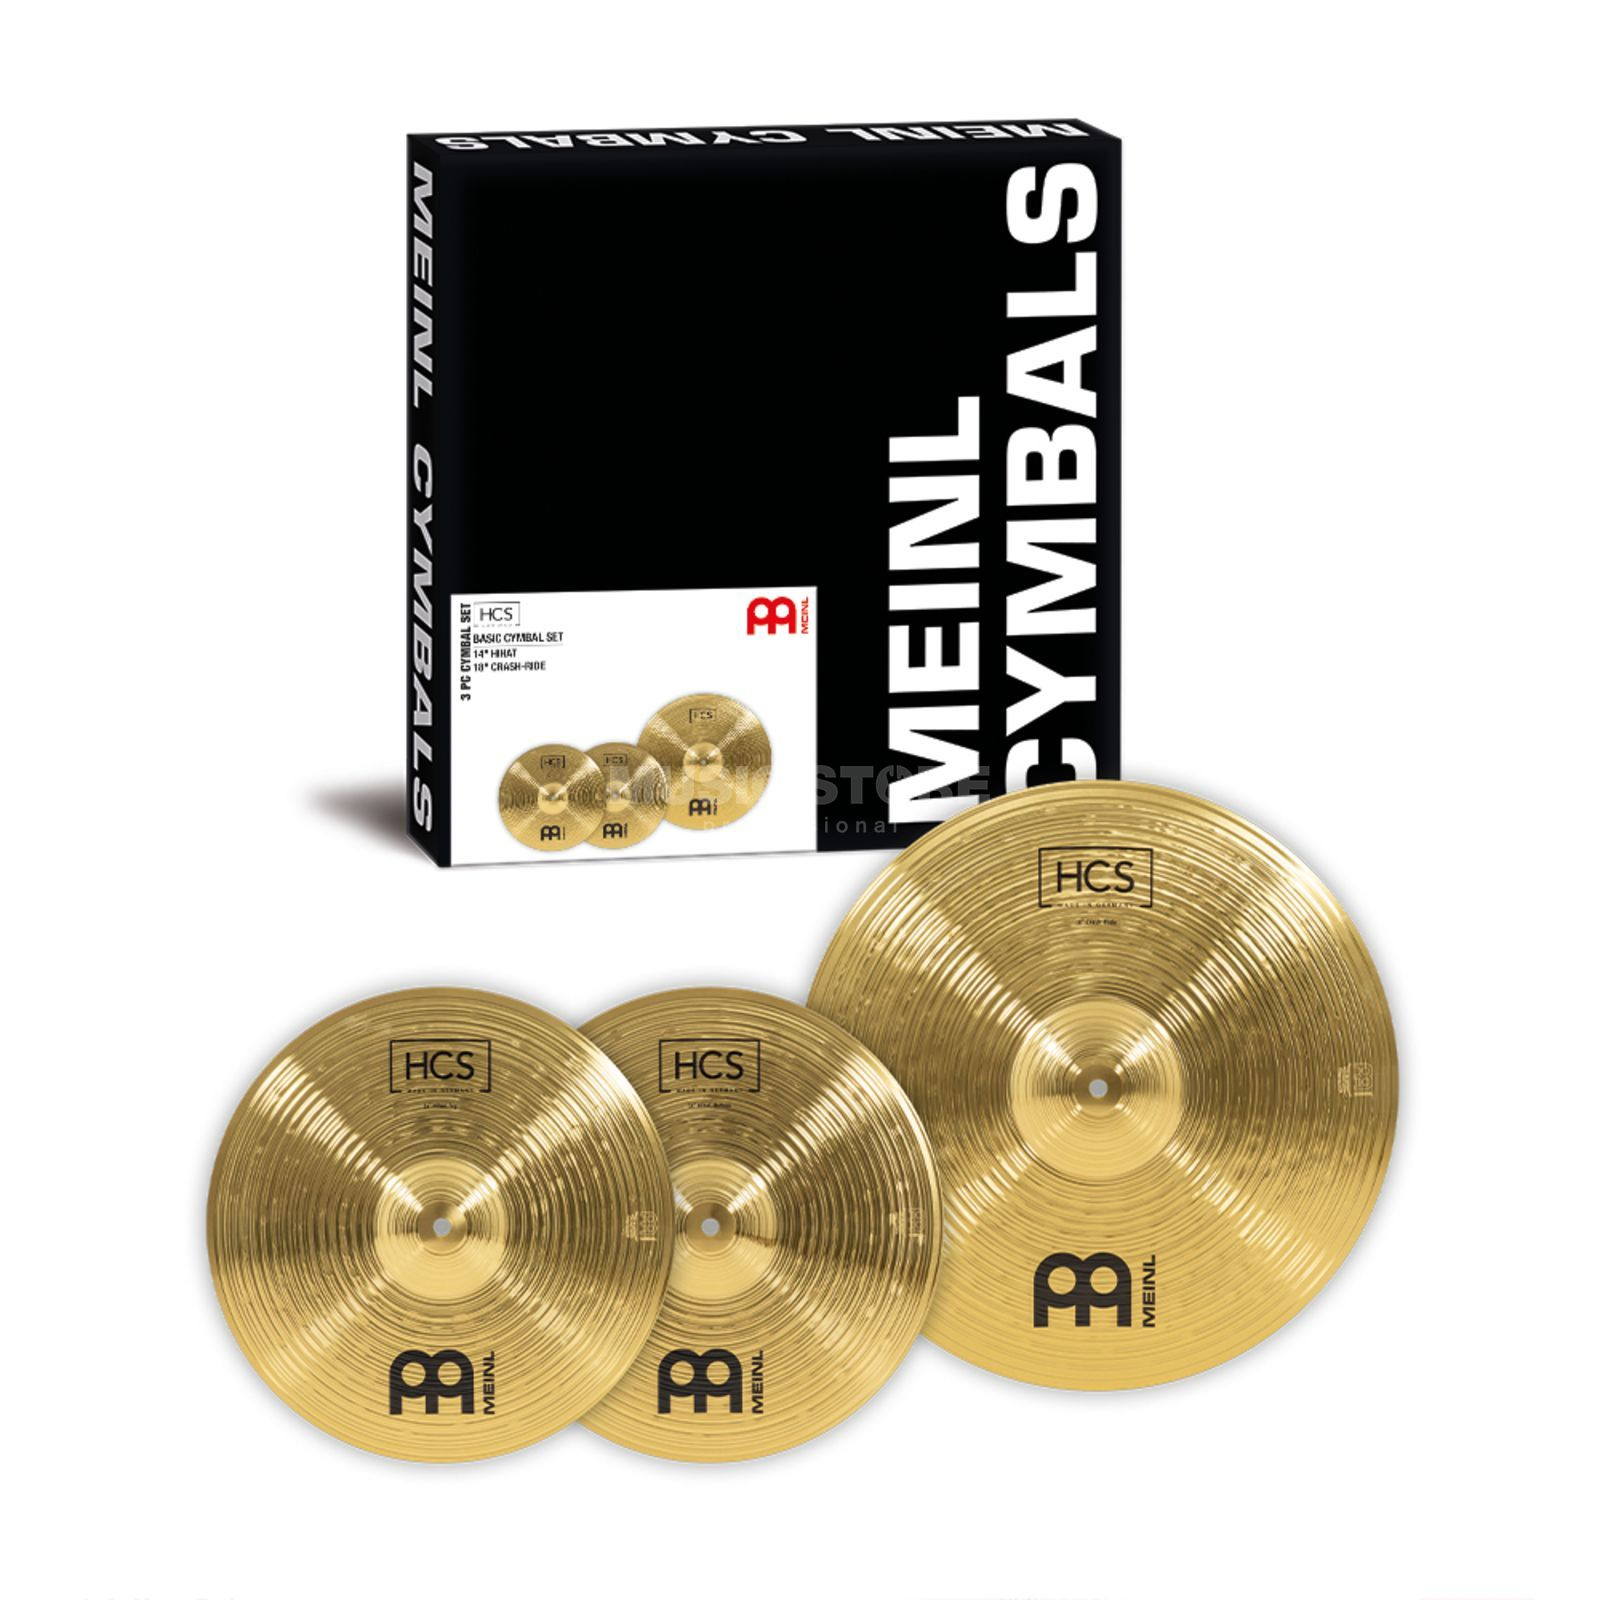 "Meinl HCS Cymbal Set 14"" HiHat, 18"" Crash Ride Produktbillede"